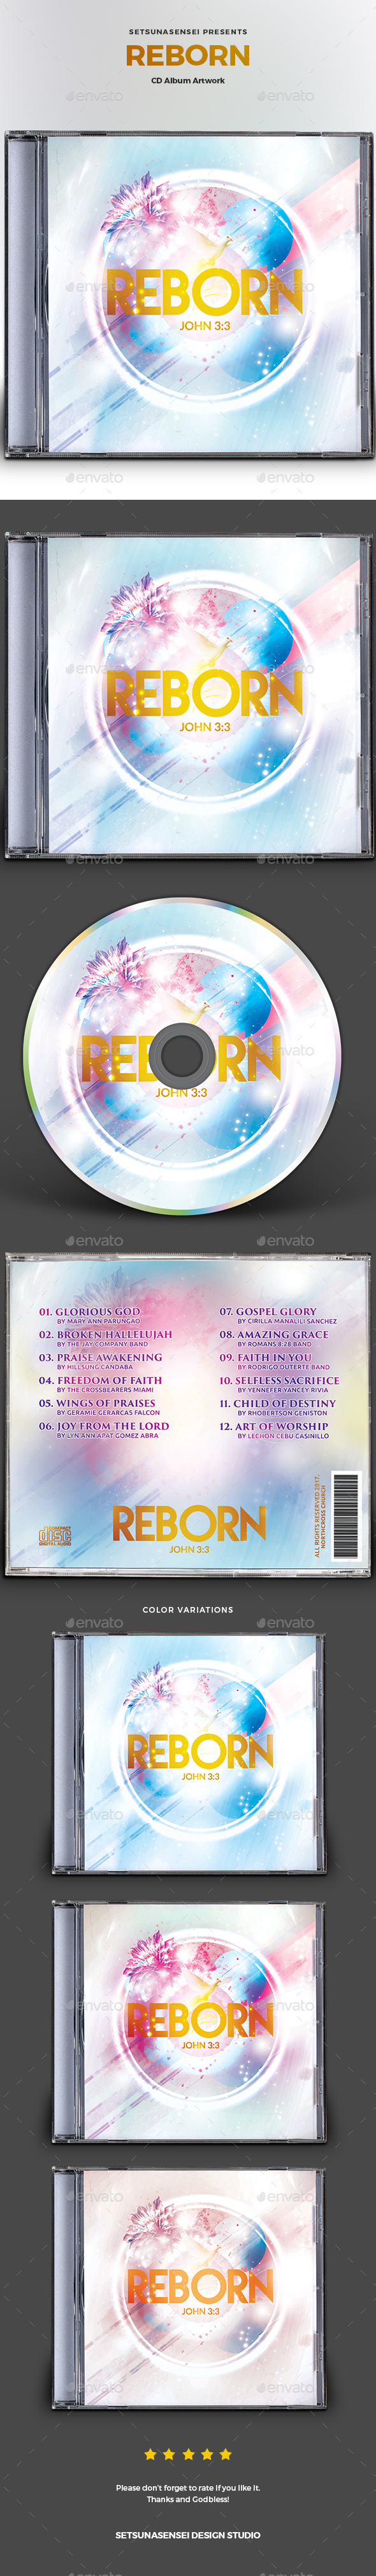 Reborn CD Album Artwork - CD & DVD Artwork Print Templates